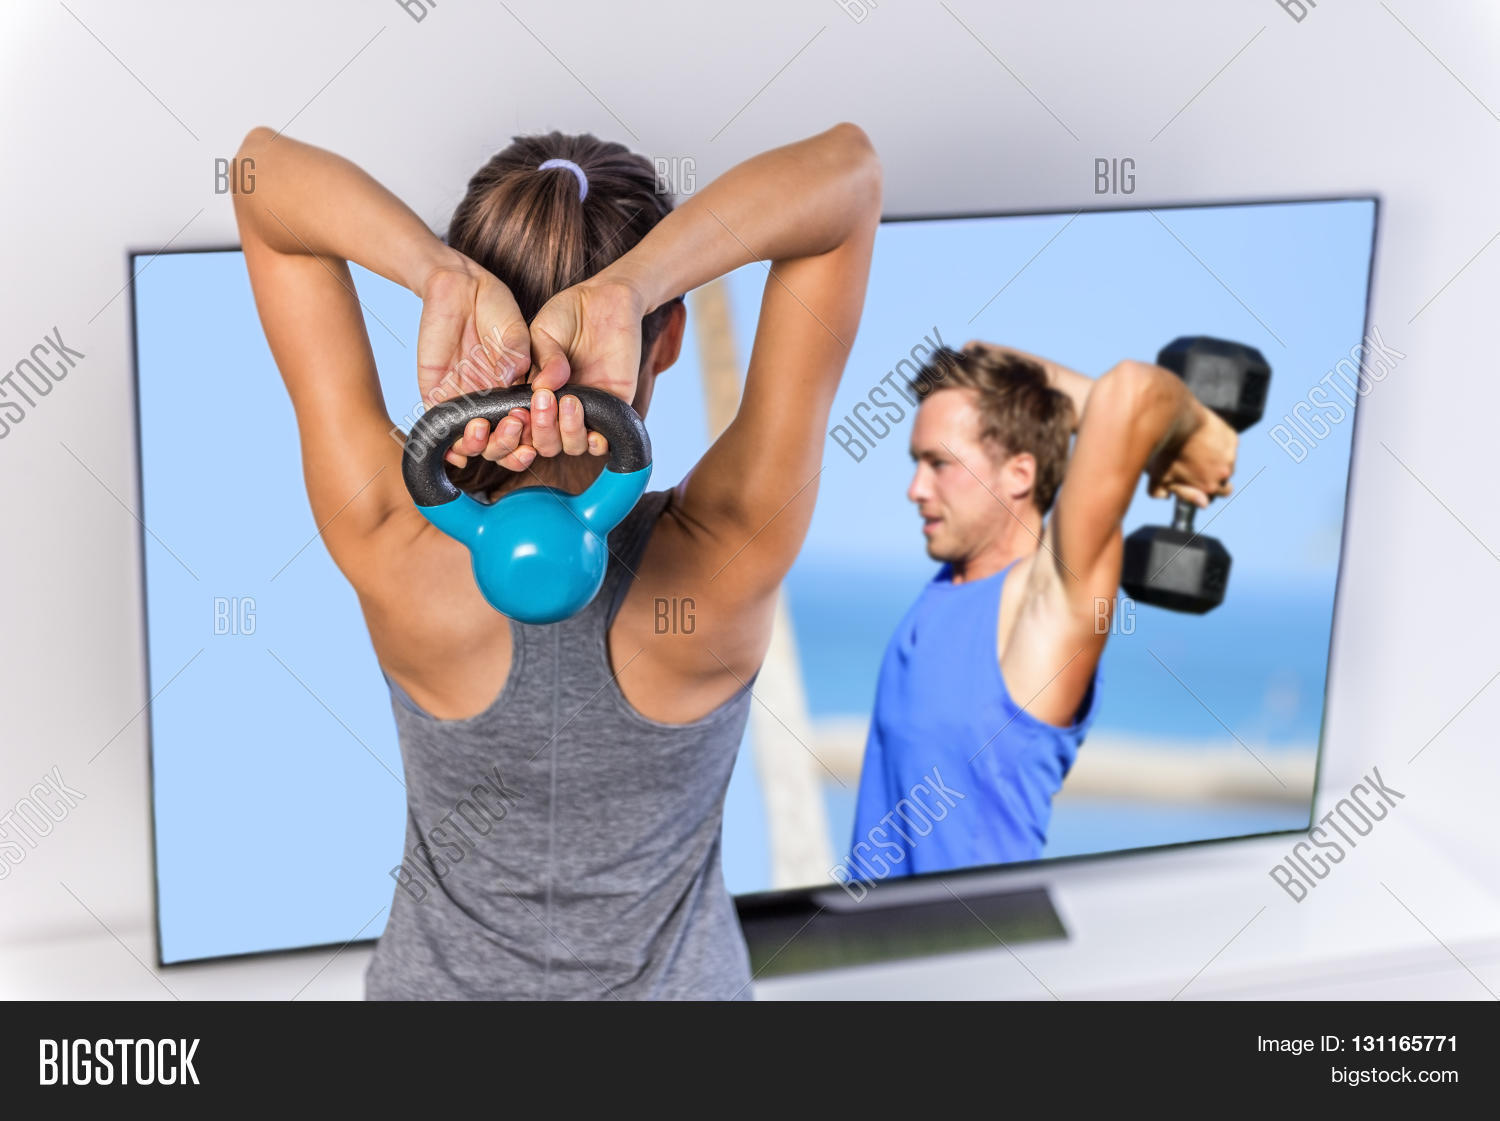 Fitness Home Woman Image & Photo (Free Trial) | Bigstock